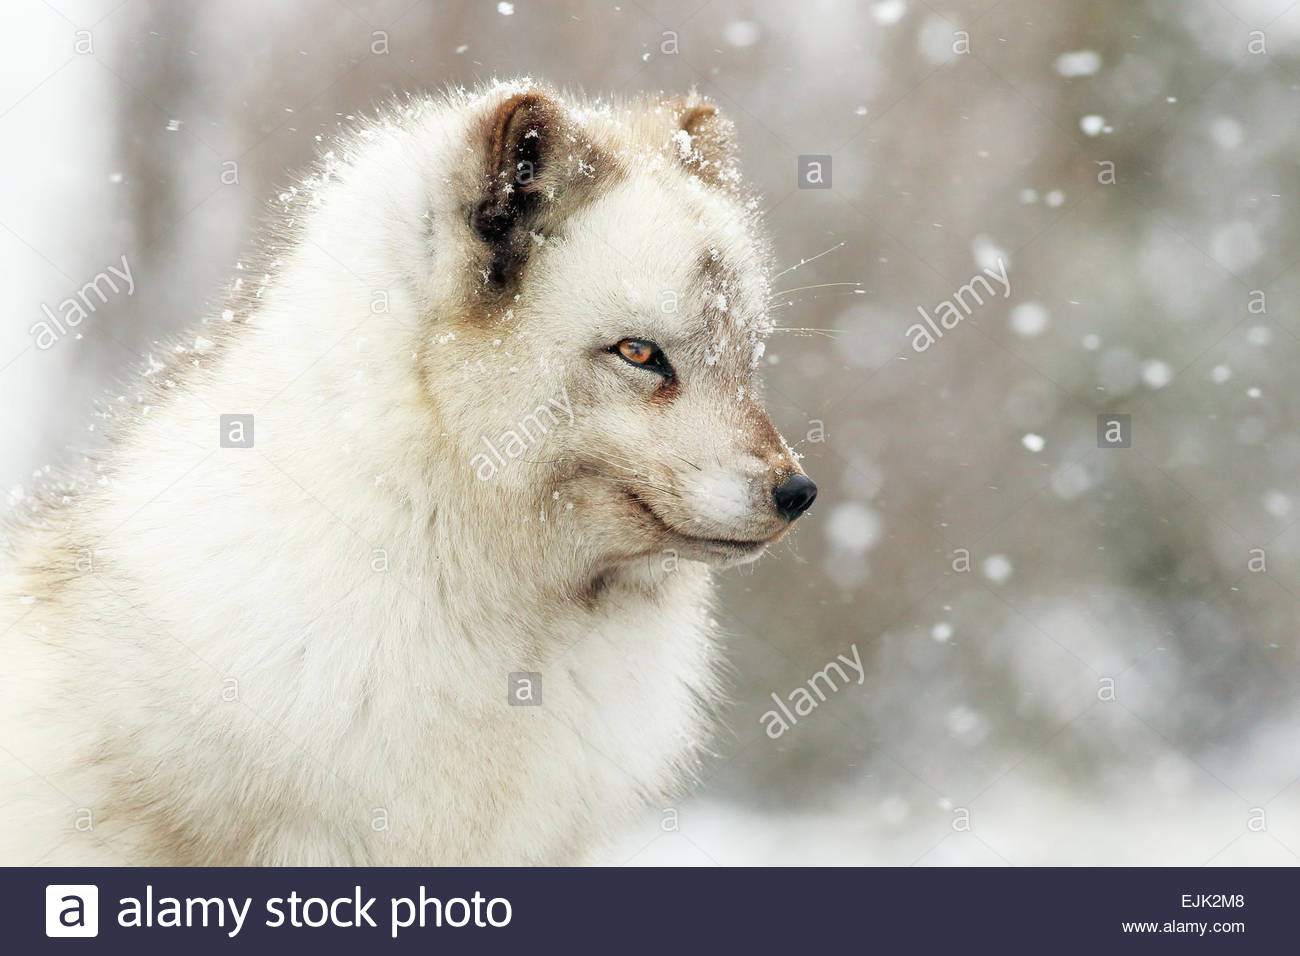 Portrait of an Artcic Fox during heavy snow fall. - Stock Image